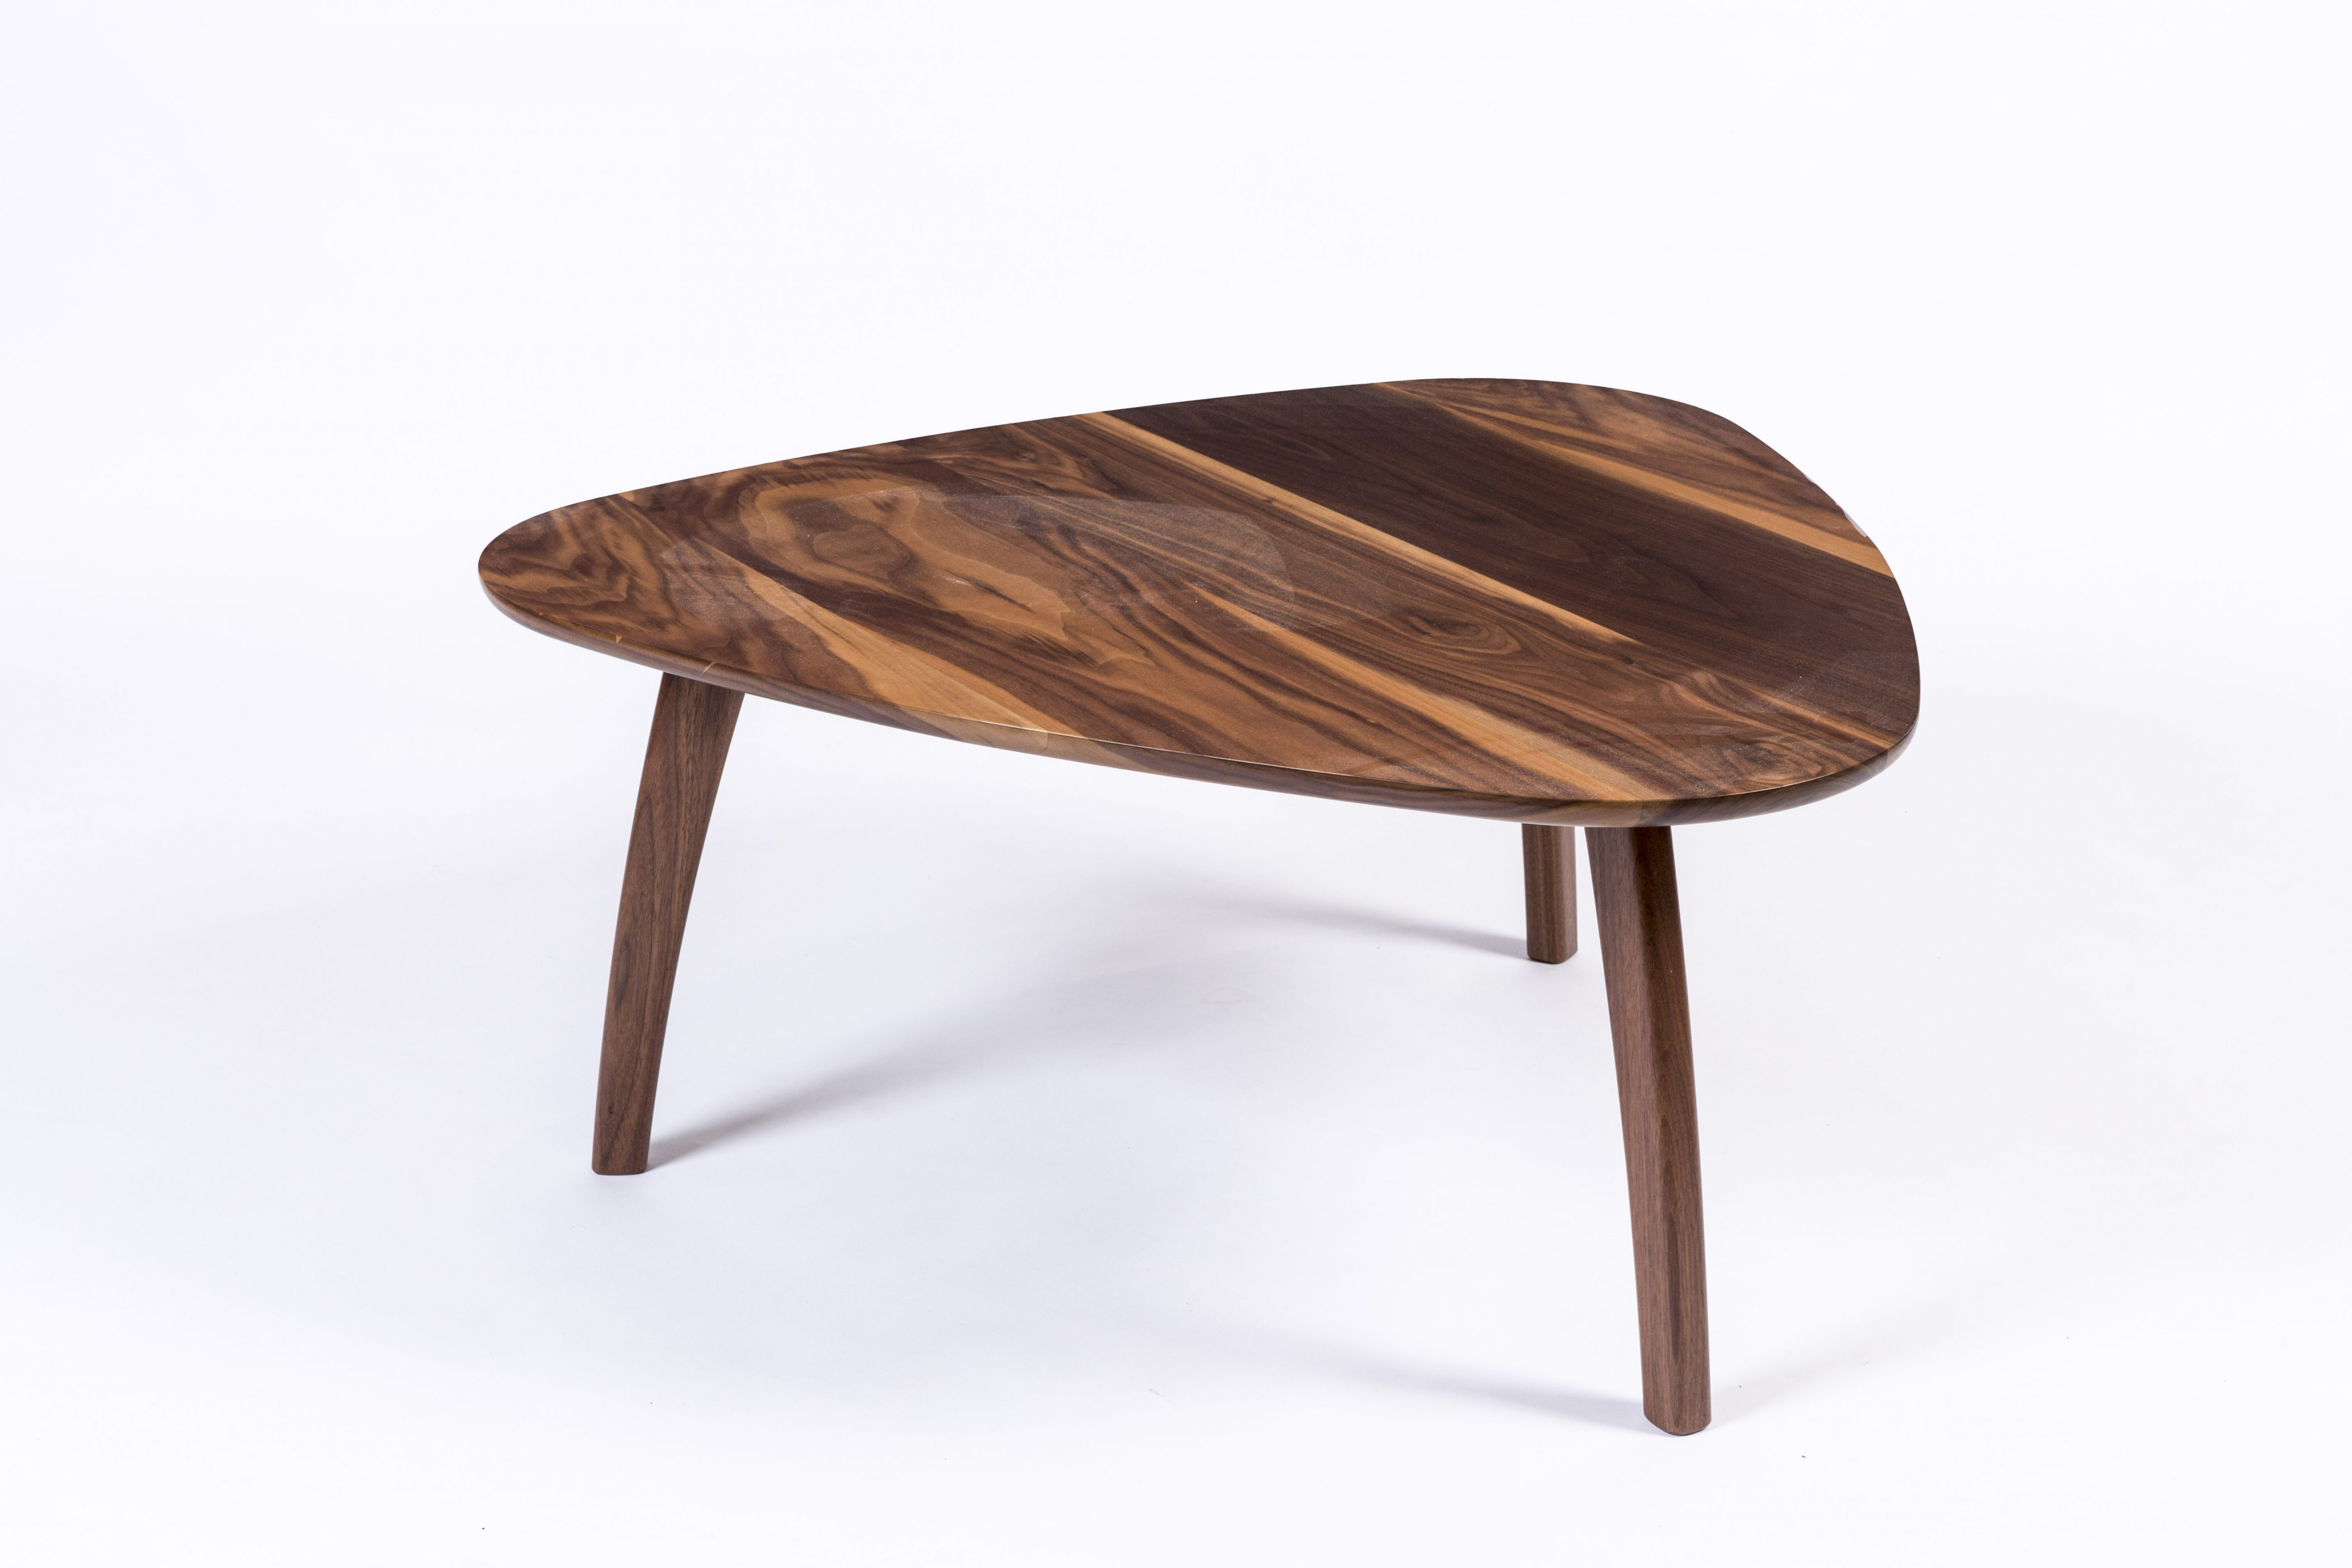 Brisbane Oval Coffee Tables Intended For Most Recent Yarra Coffee Table – Buywood Furniture (View 4 of 20)